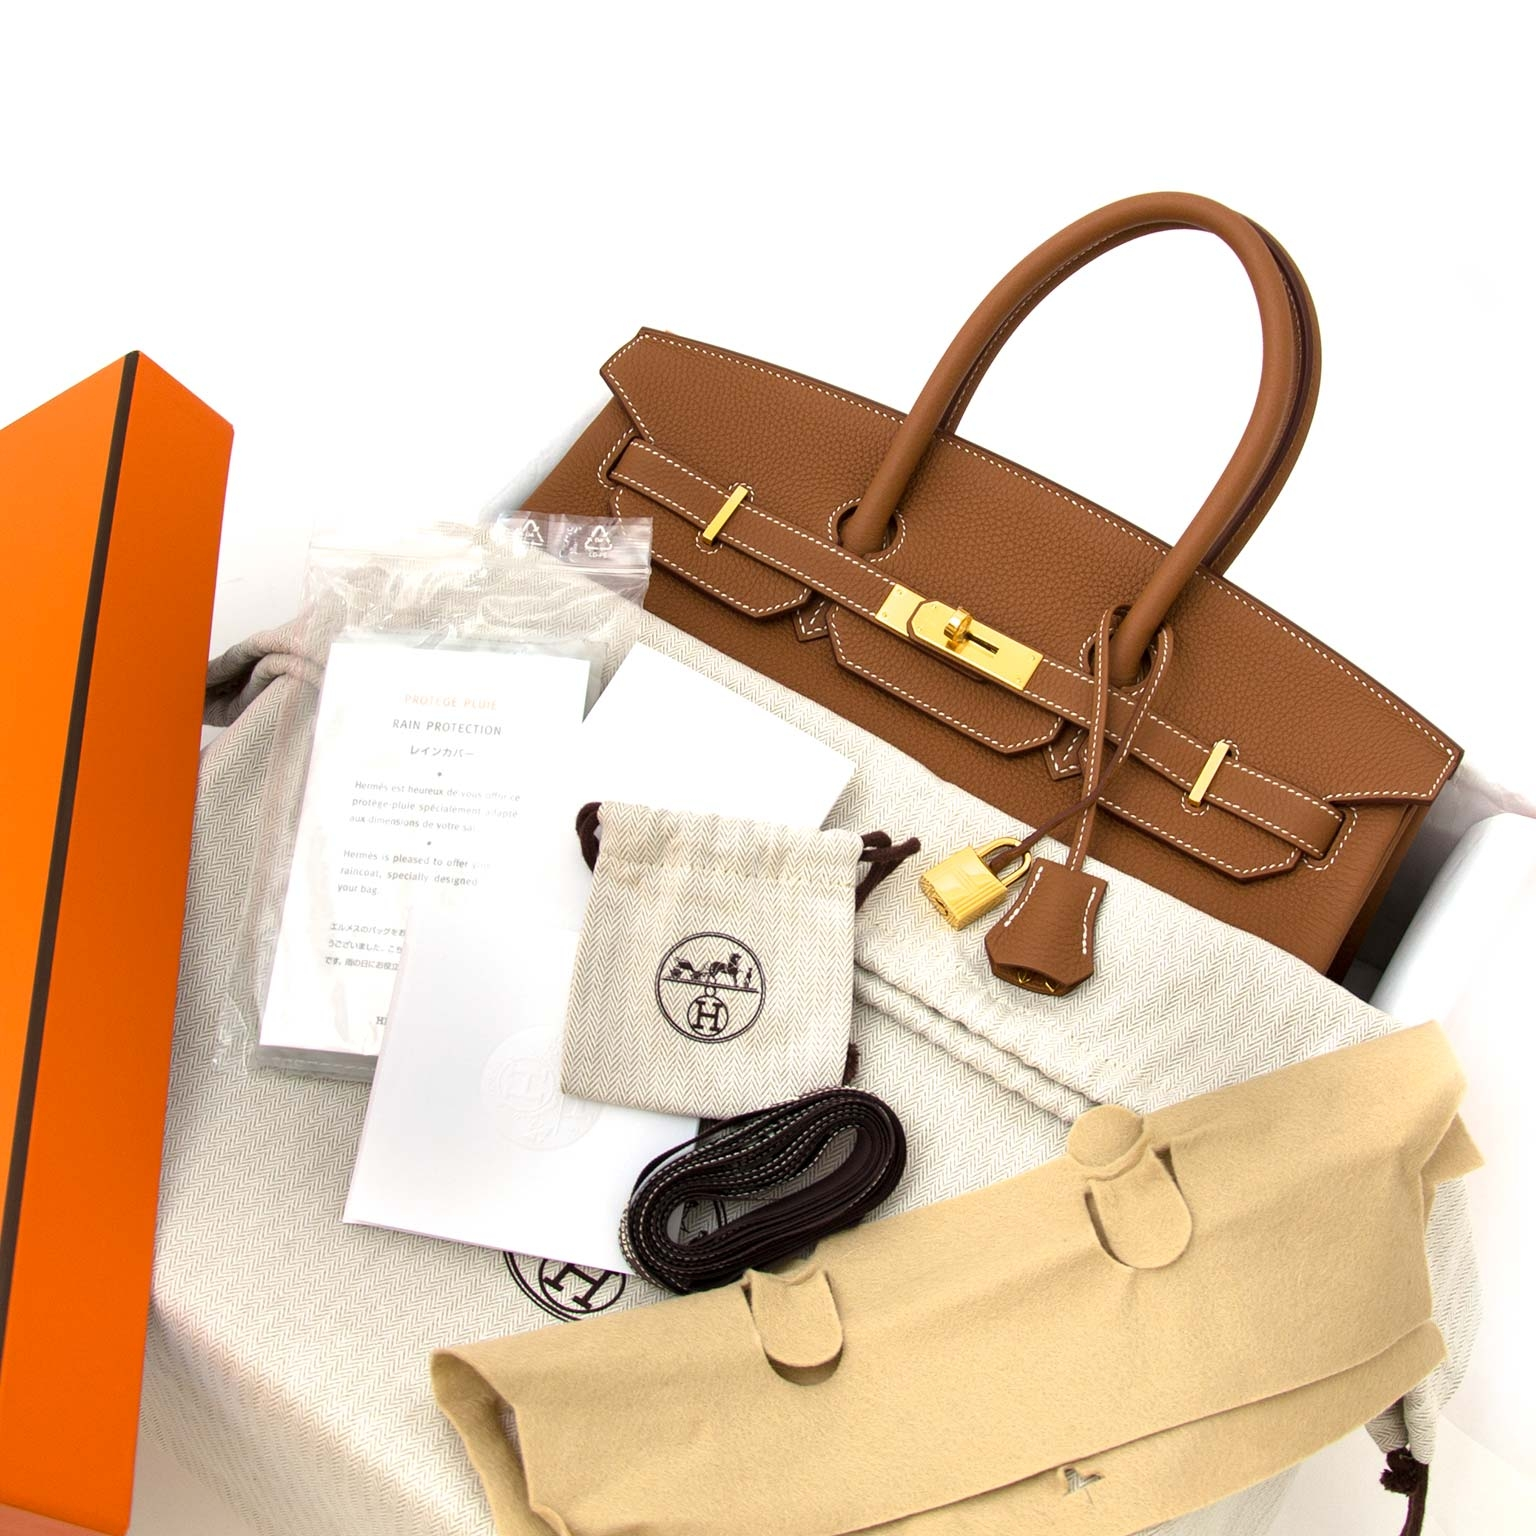 100% authentic Hermès Birkin 35 Togo Gold GHW now at labellov.com without a waitinglist